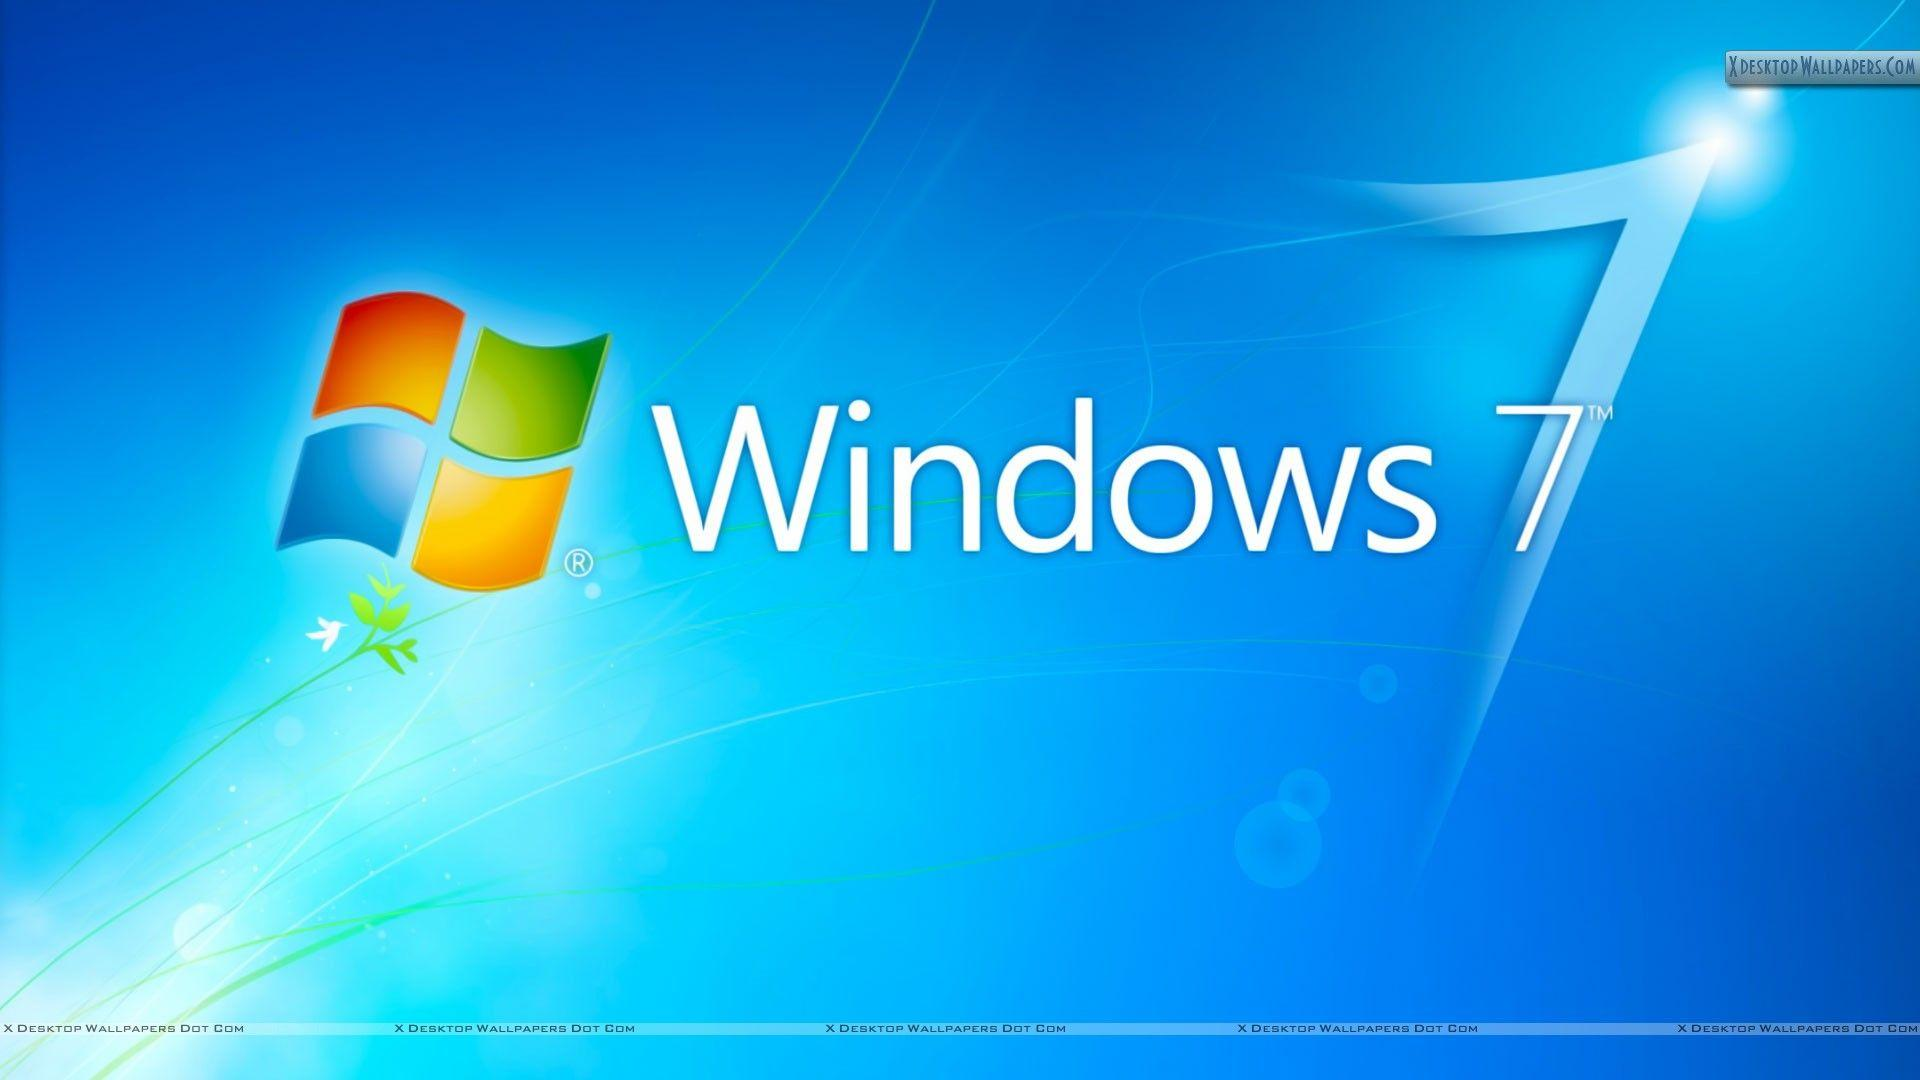 Microsoft Windows 7 Wallpapers - Wallpaper Cave